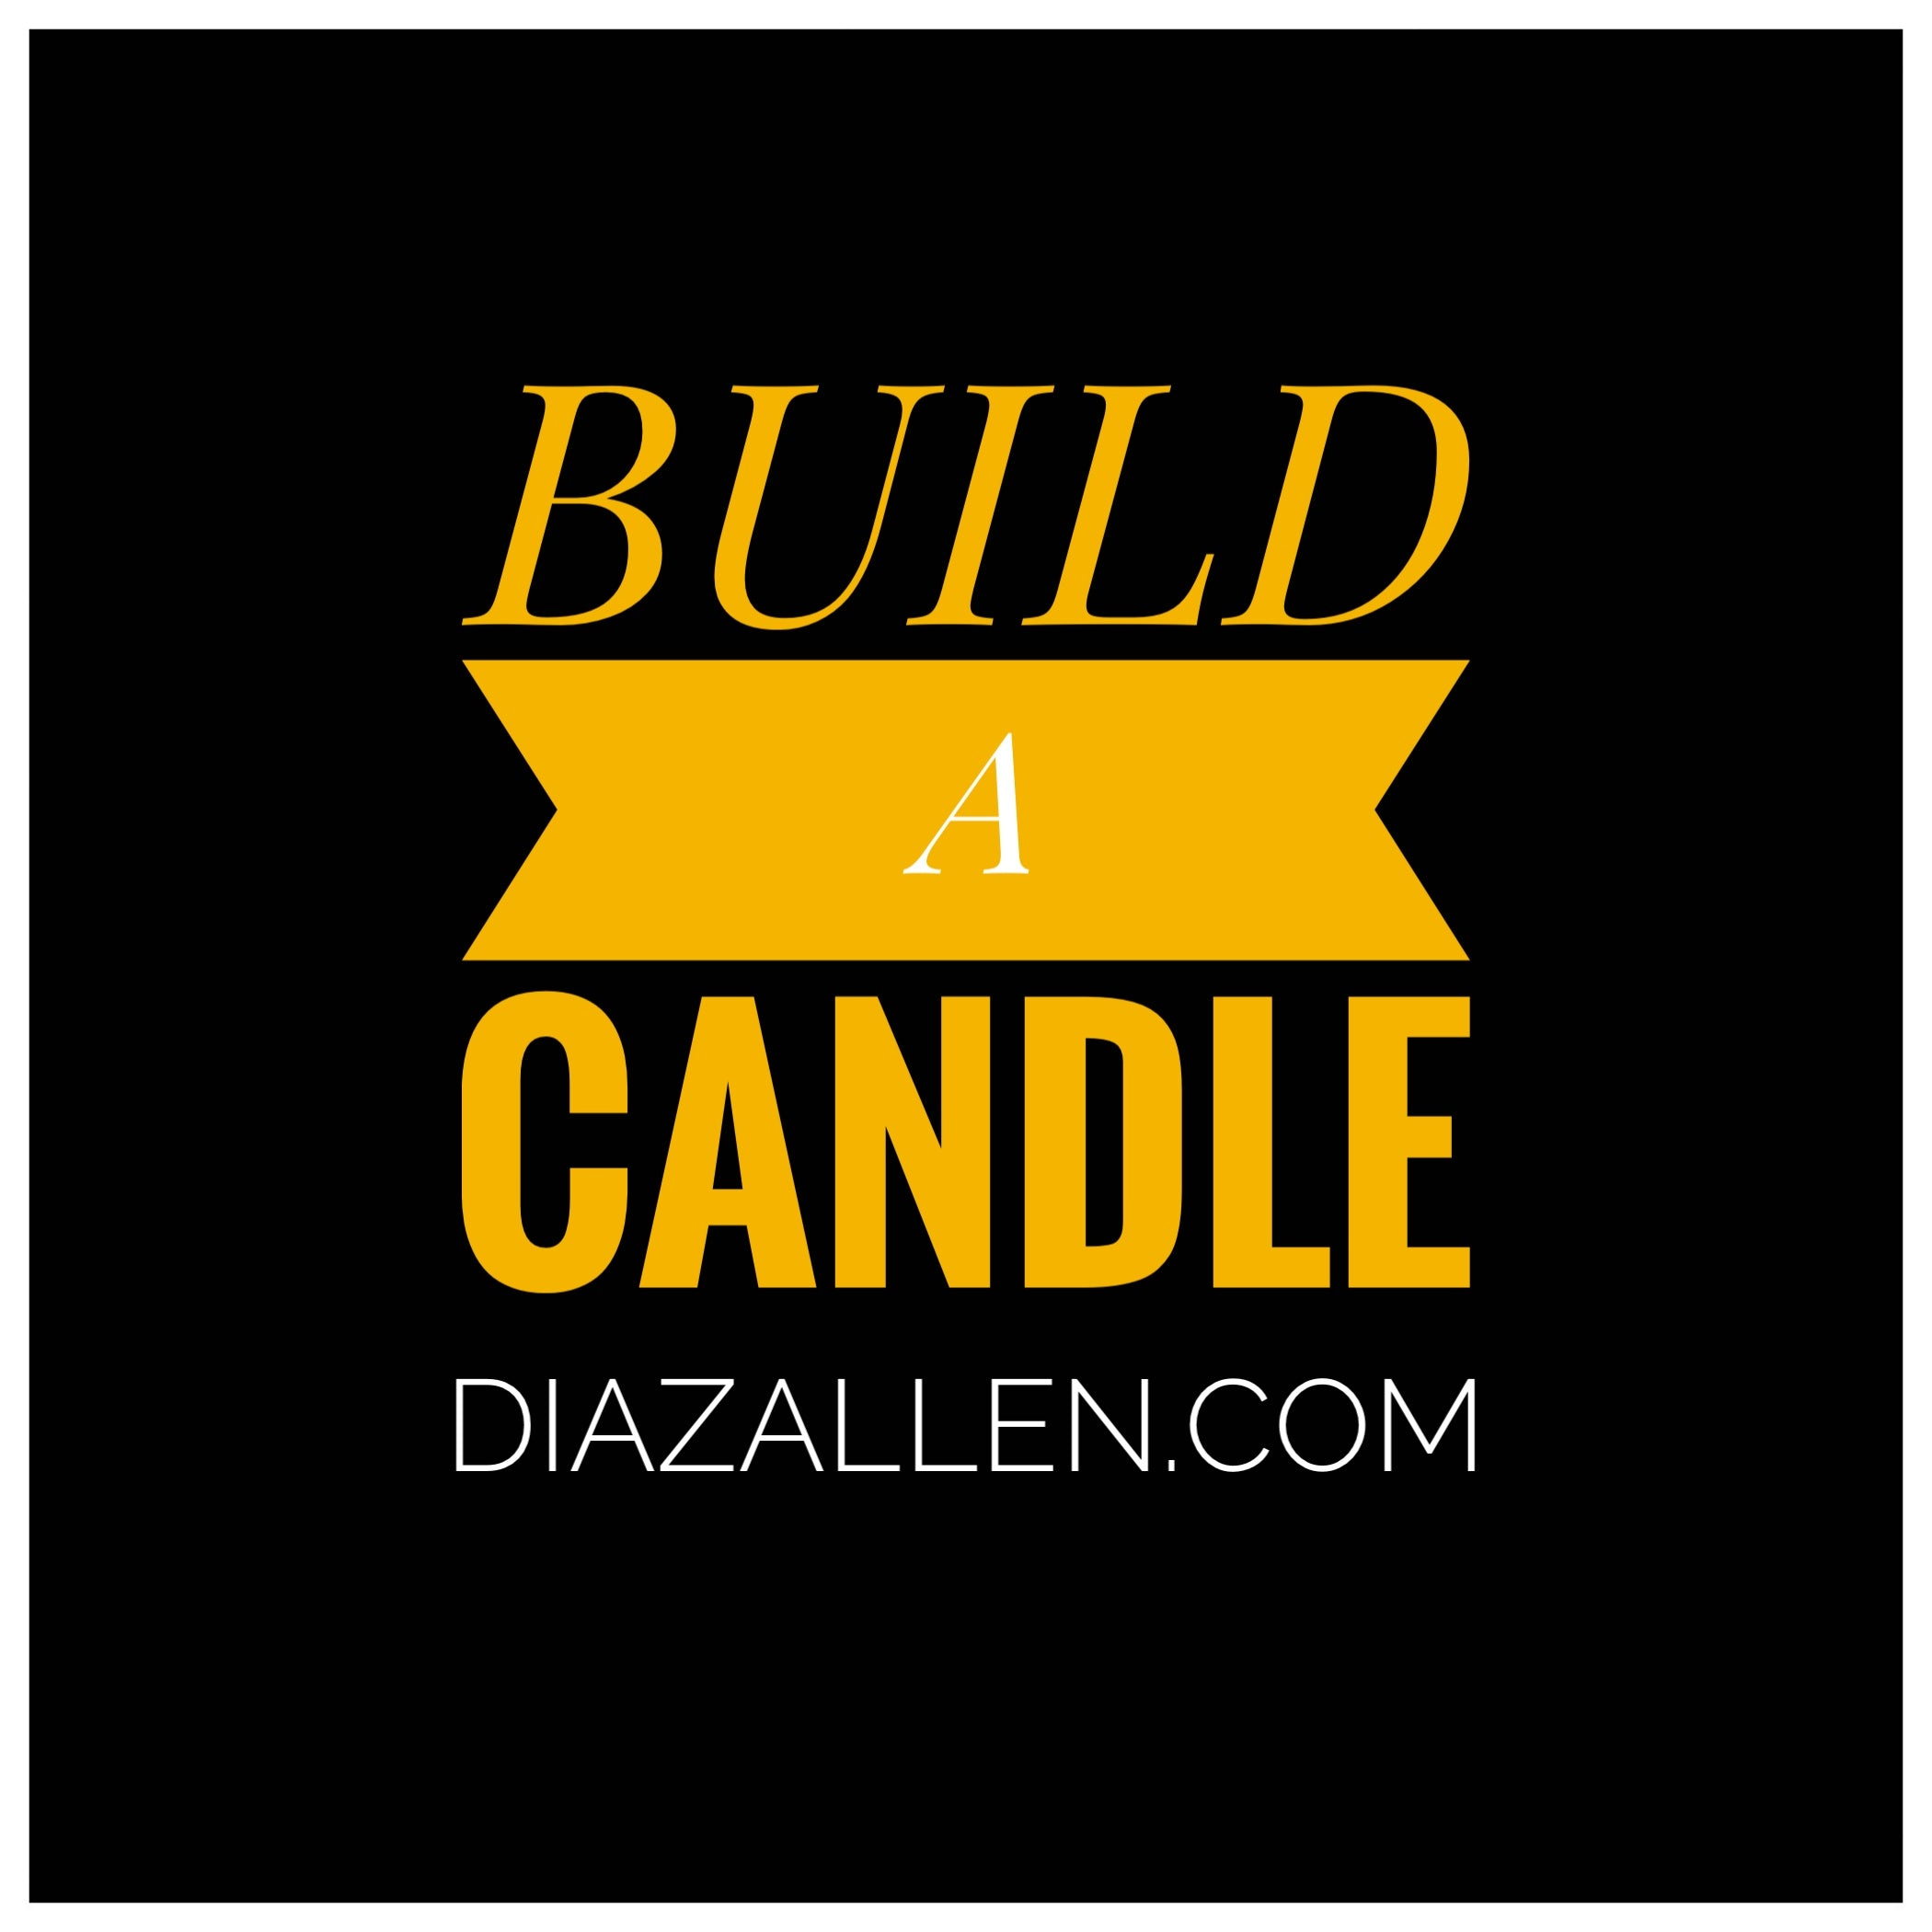 BUILD A CANDLE